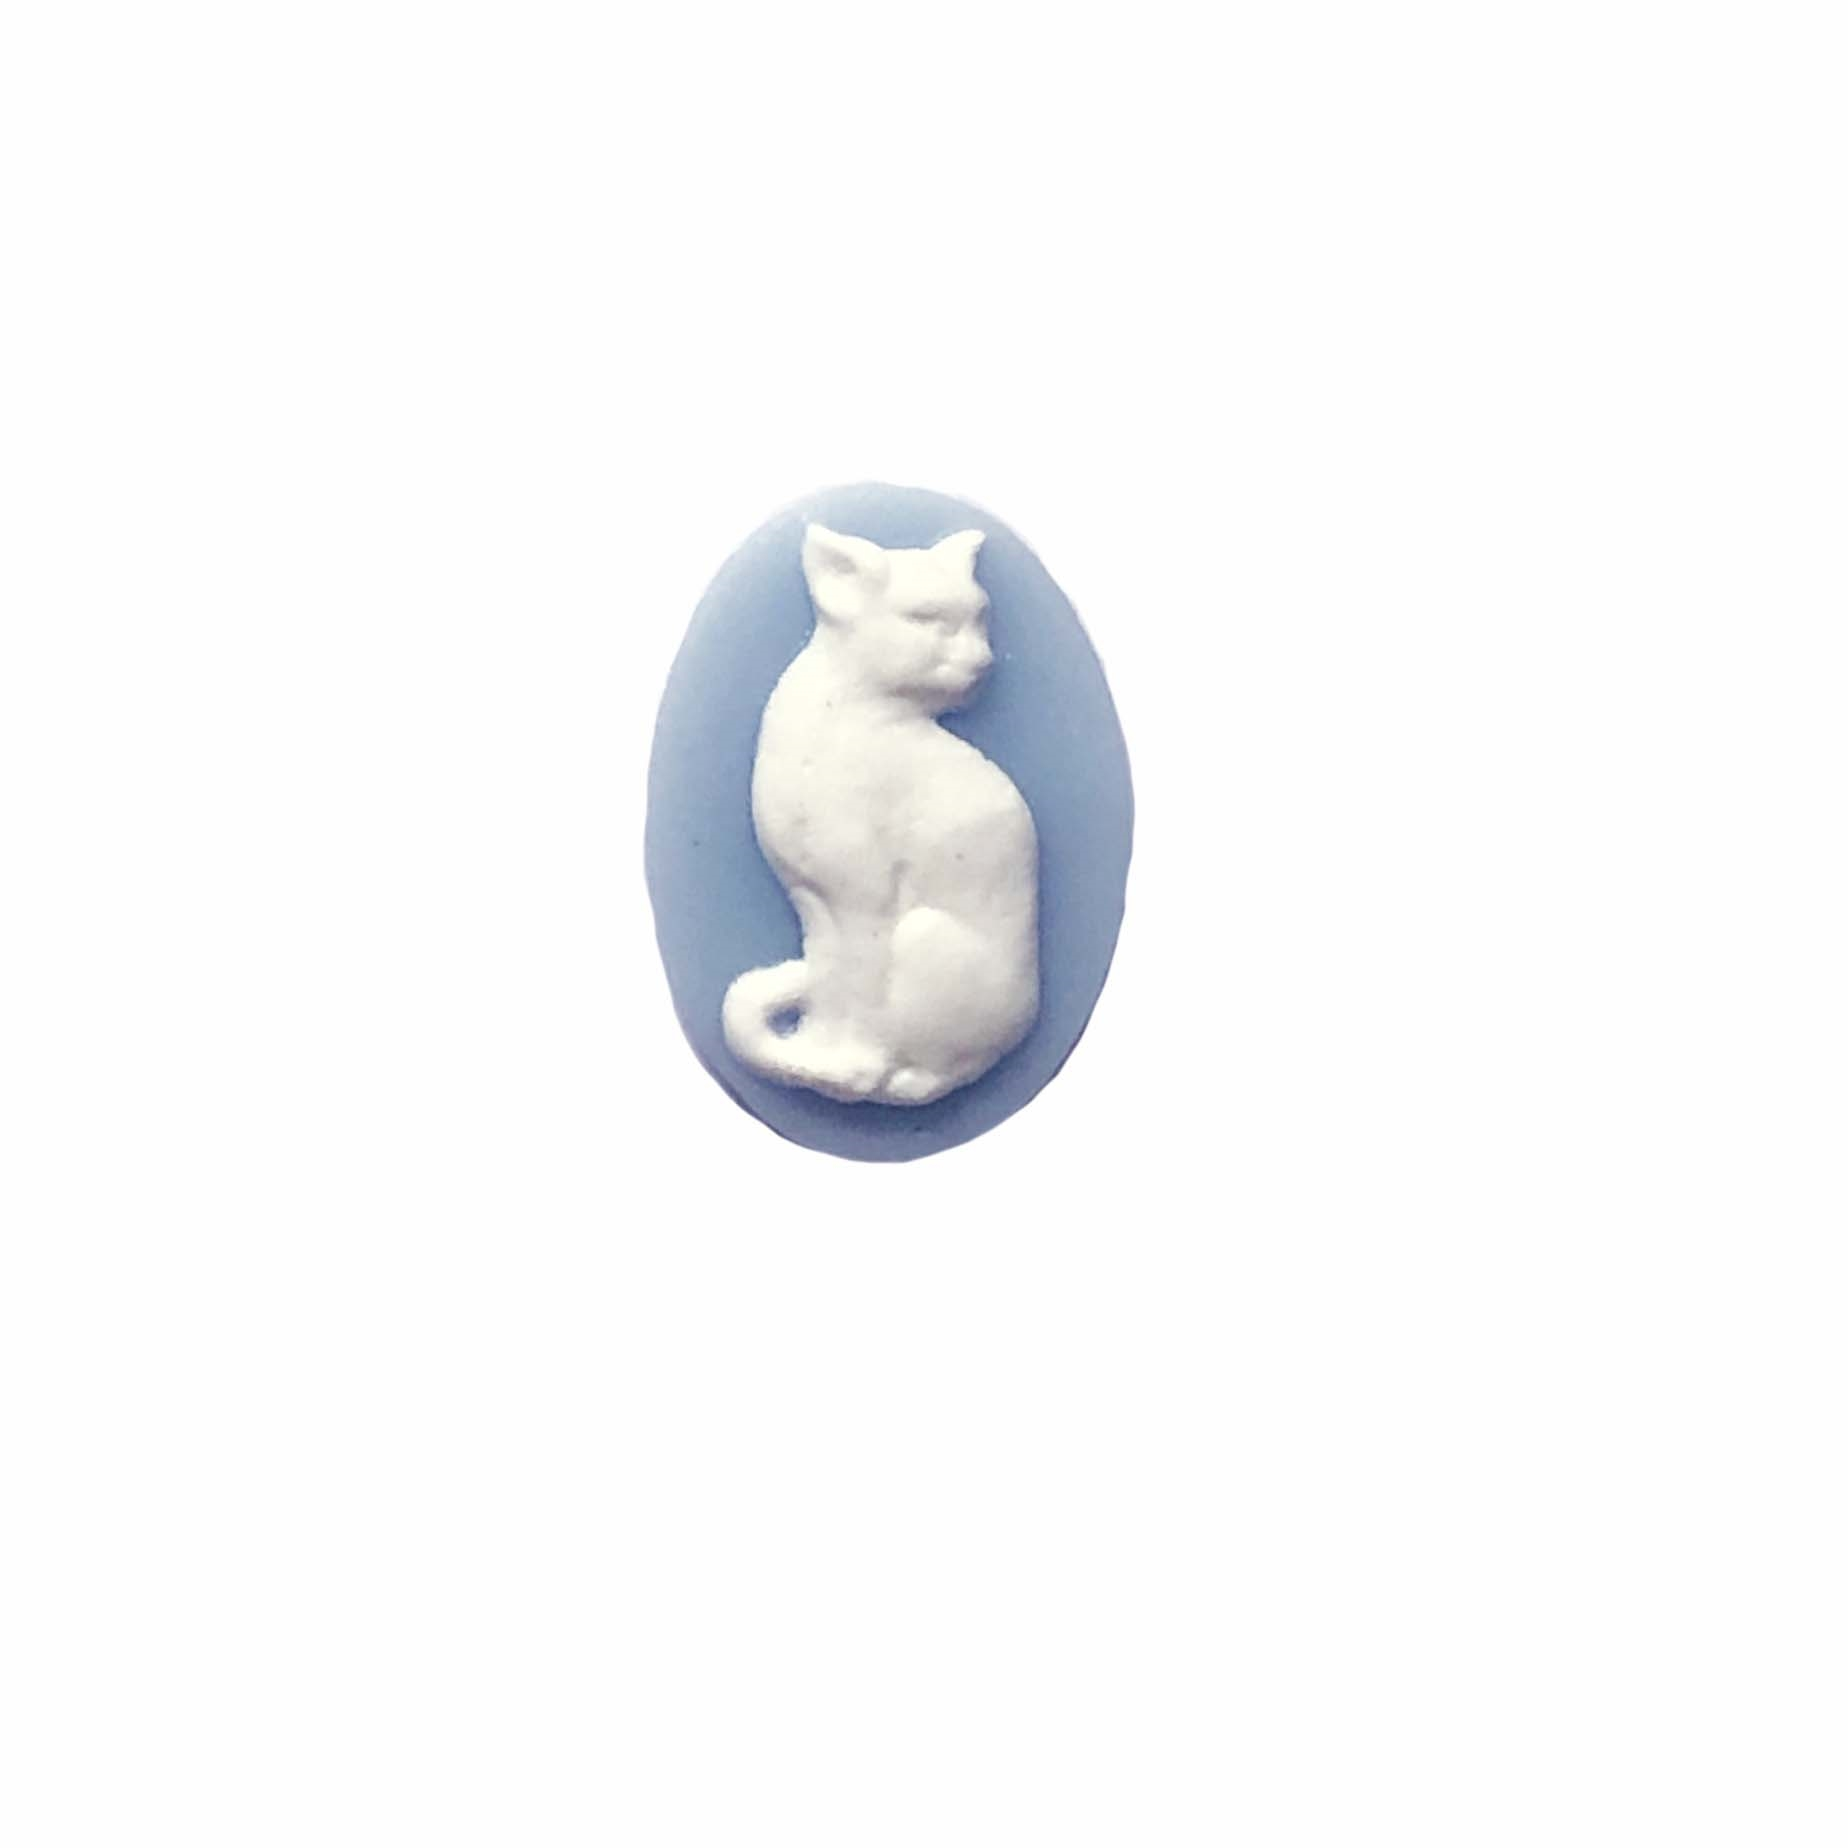 sitting kitty cameo, white and blue cameo, white on blue, cat cameo, cat, kitty, sitting kitty, imported resin, cameo, cat jewelry, 18x13mm, animal, blue, jewelry making, jewelry supplies, jewelry findings, B'sue Boutiques, 08873